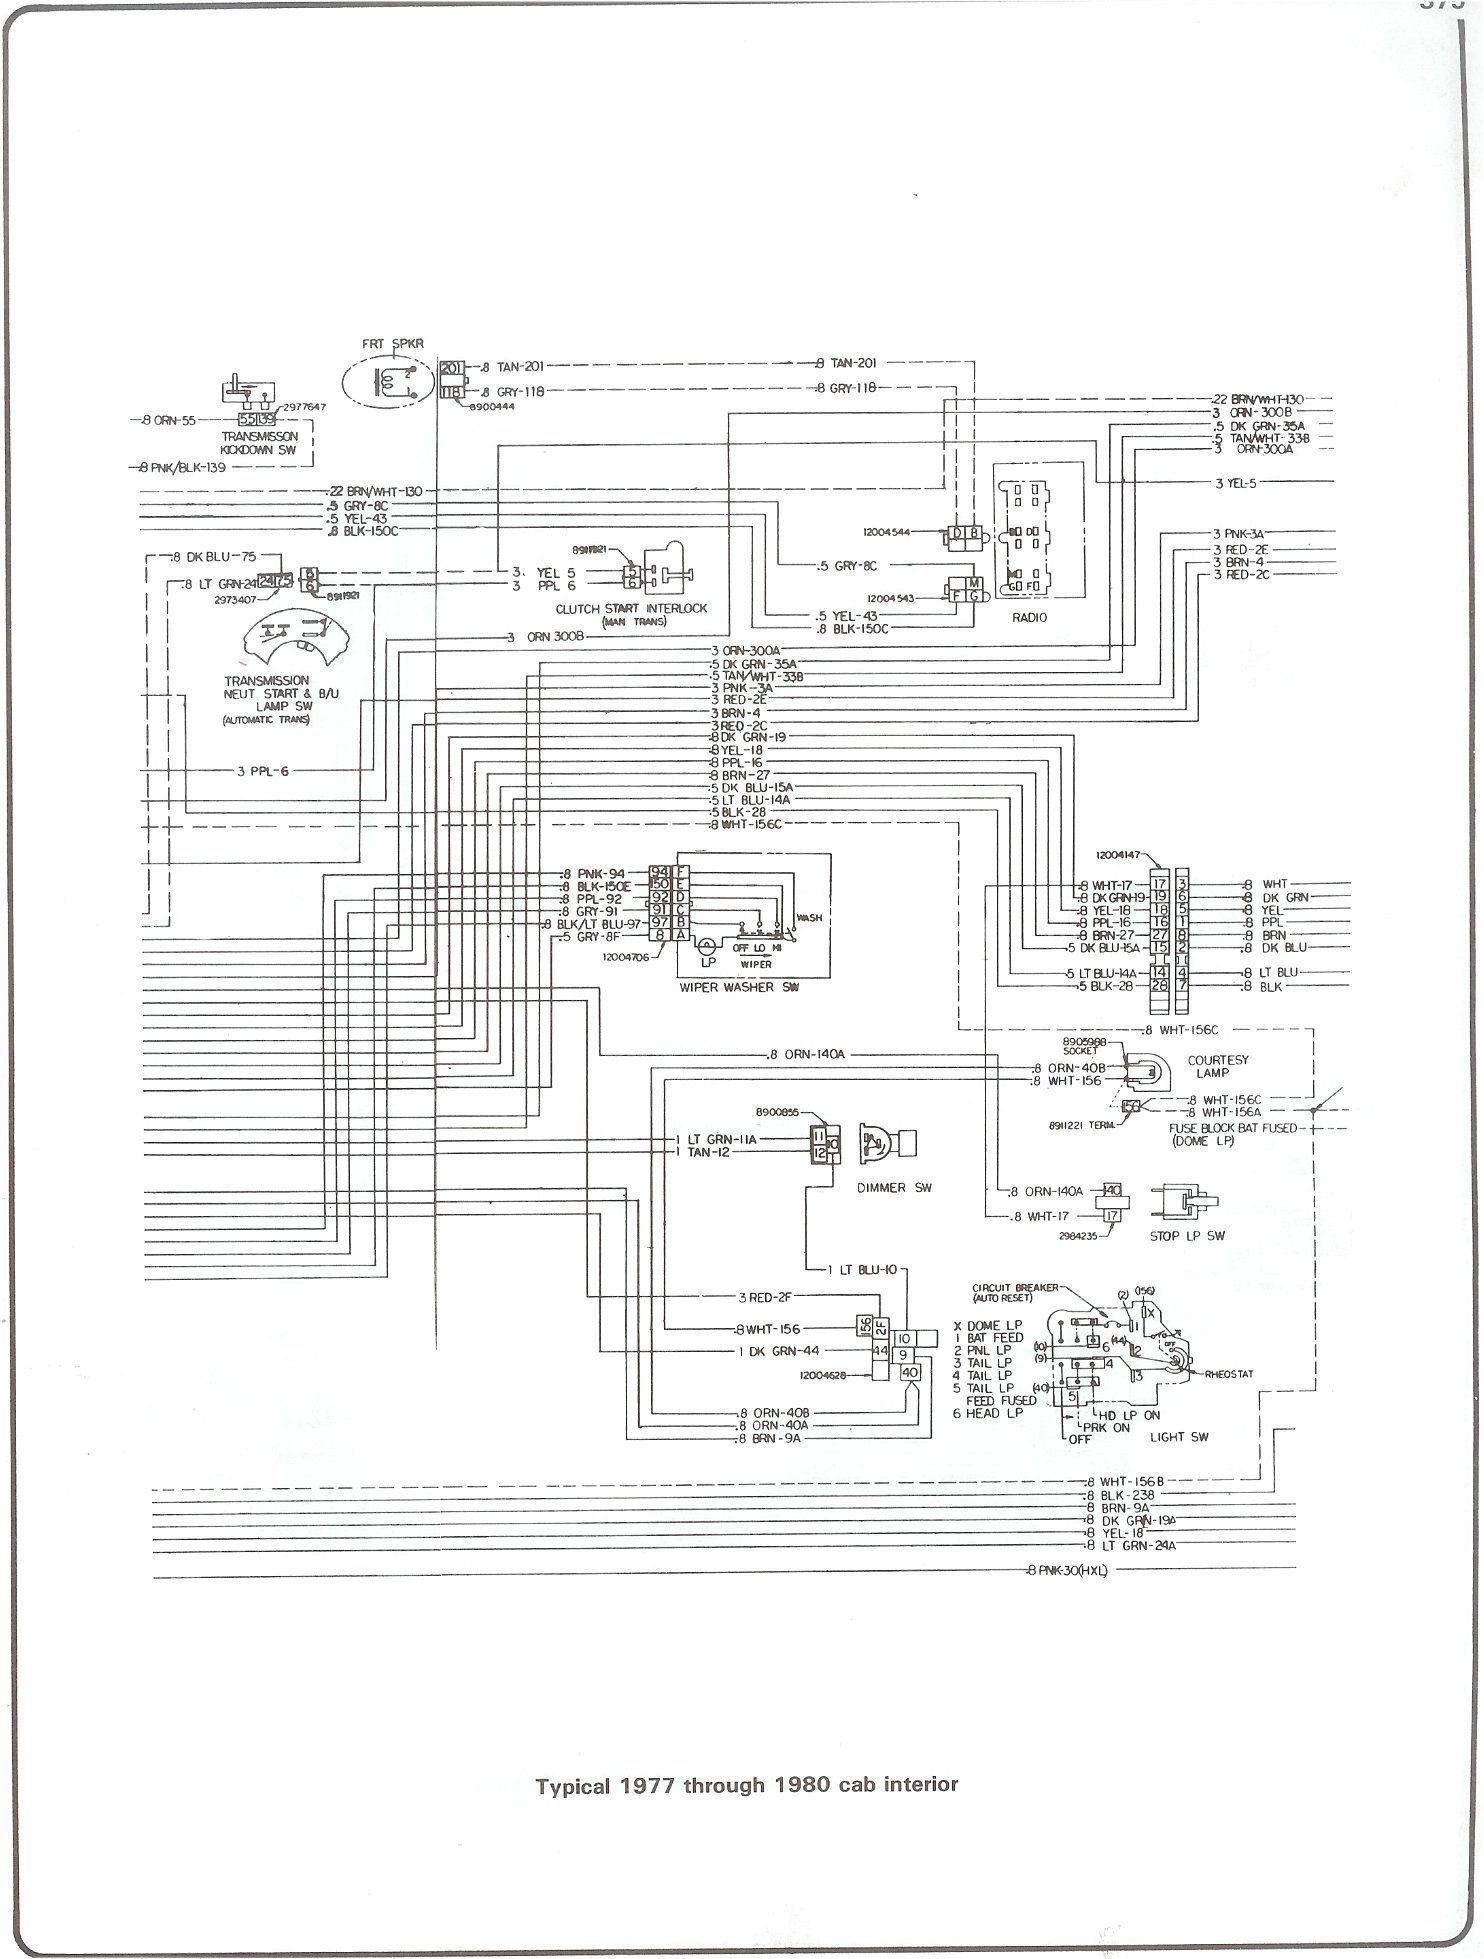 Complete 73-87 Wiring Diagrams on 2012 chevy metro wiring diagram, 2012 chevy malibu wiring diagram, 2012 chevy truck wiring diagram, 2012 chevy trailer wiring diagram, 2012 chevy tahoe wiring diagram, 2012 chevy volt wiring diagram,